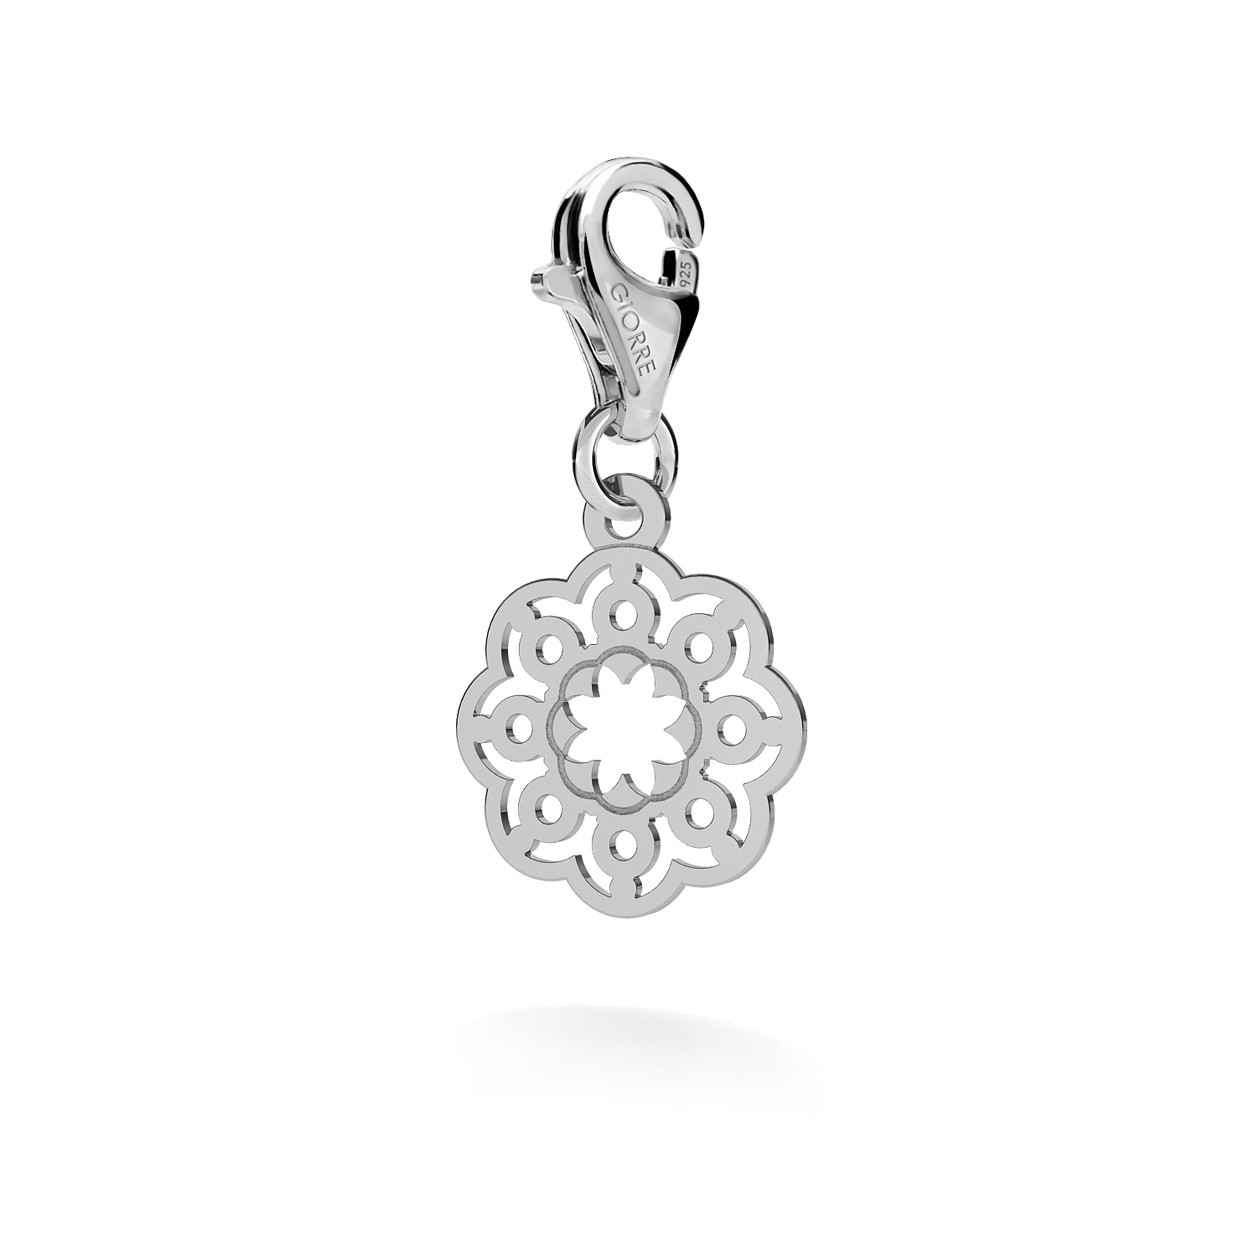 CHARM 58, SMALL OPENWORK, SILVER 925, RHODIUM OR GOLD PLATED